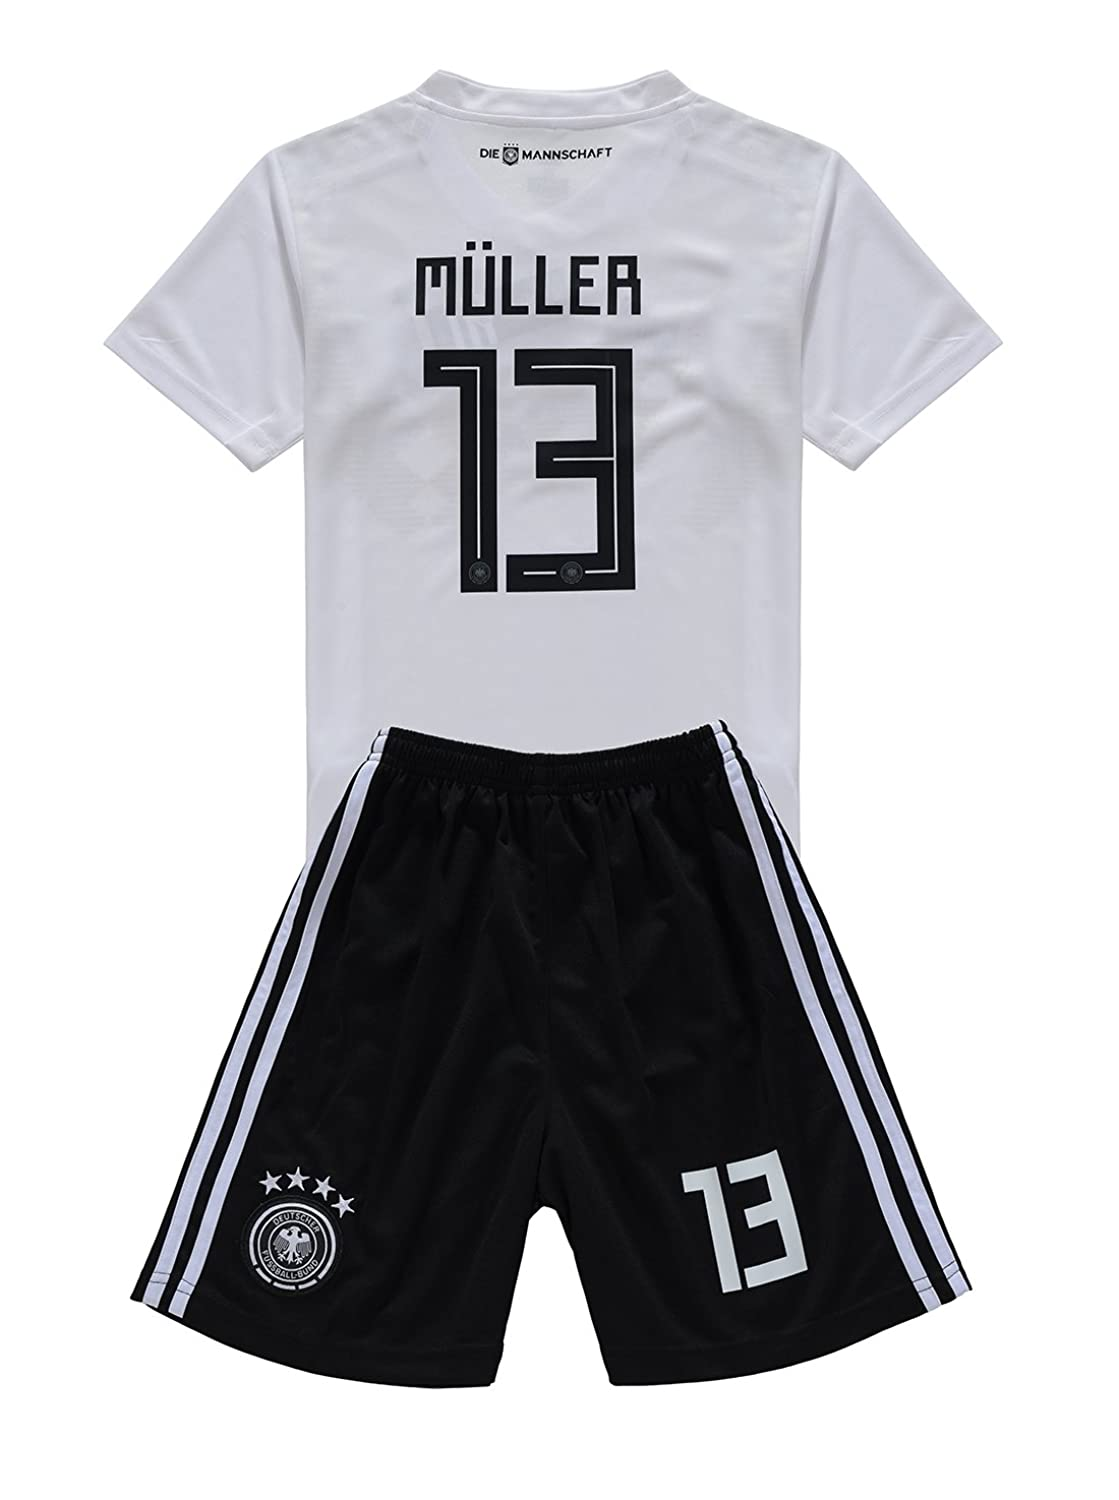 Brookenry 2018 Muller Germany 13 Kids/Youths Home Soccer Jersey Shorts free shipping